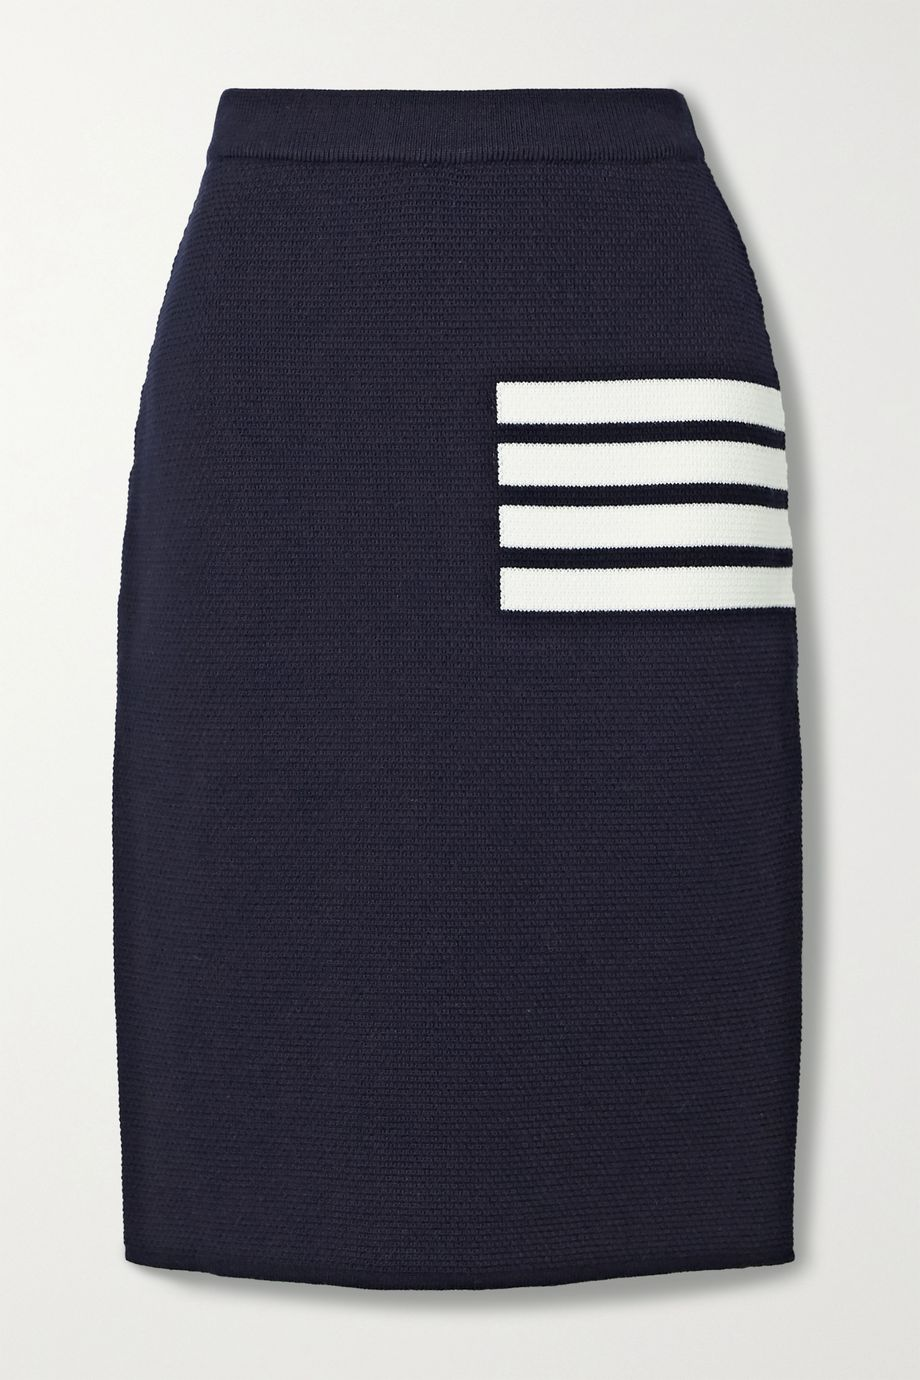 Thom Browne Striped merino wool-blend skirt